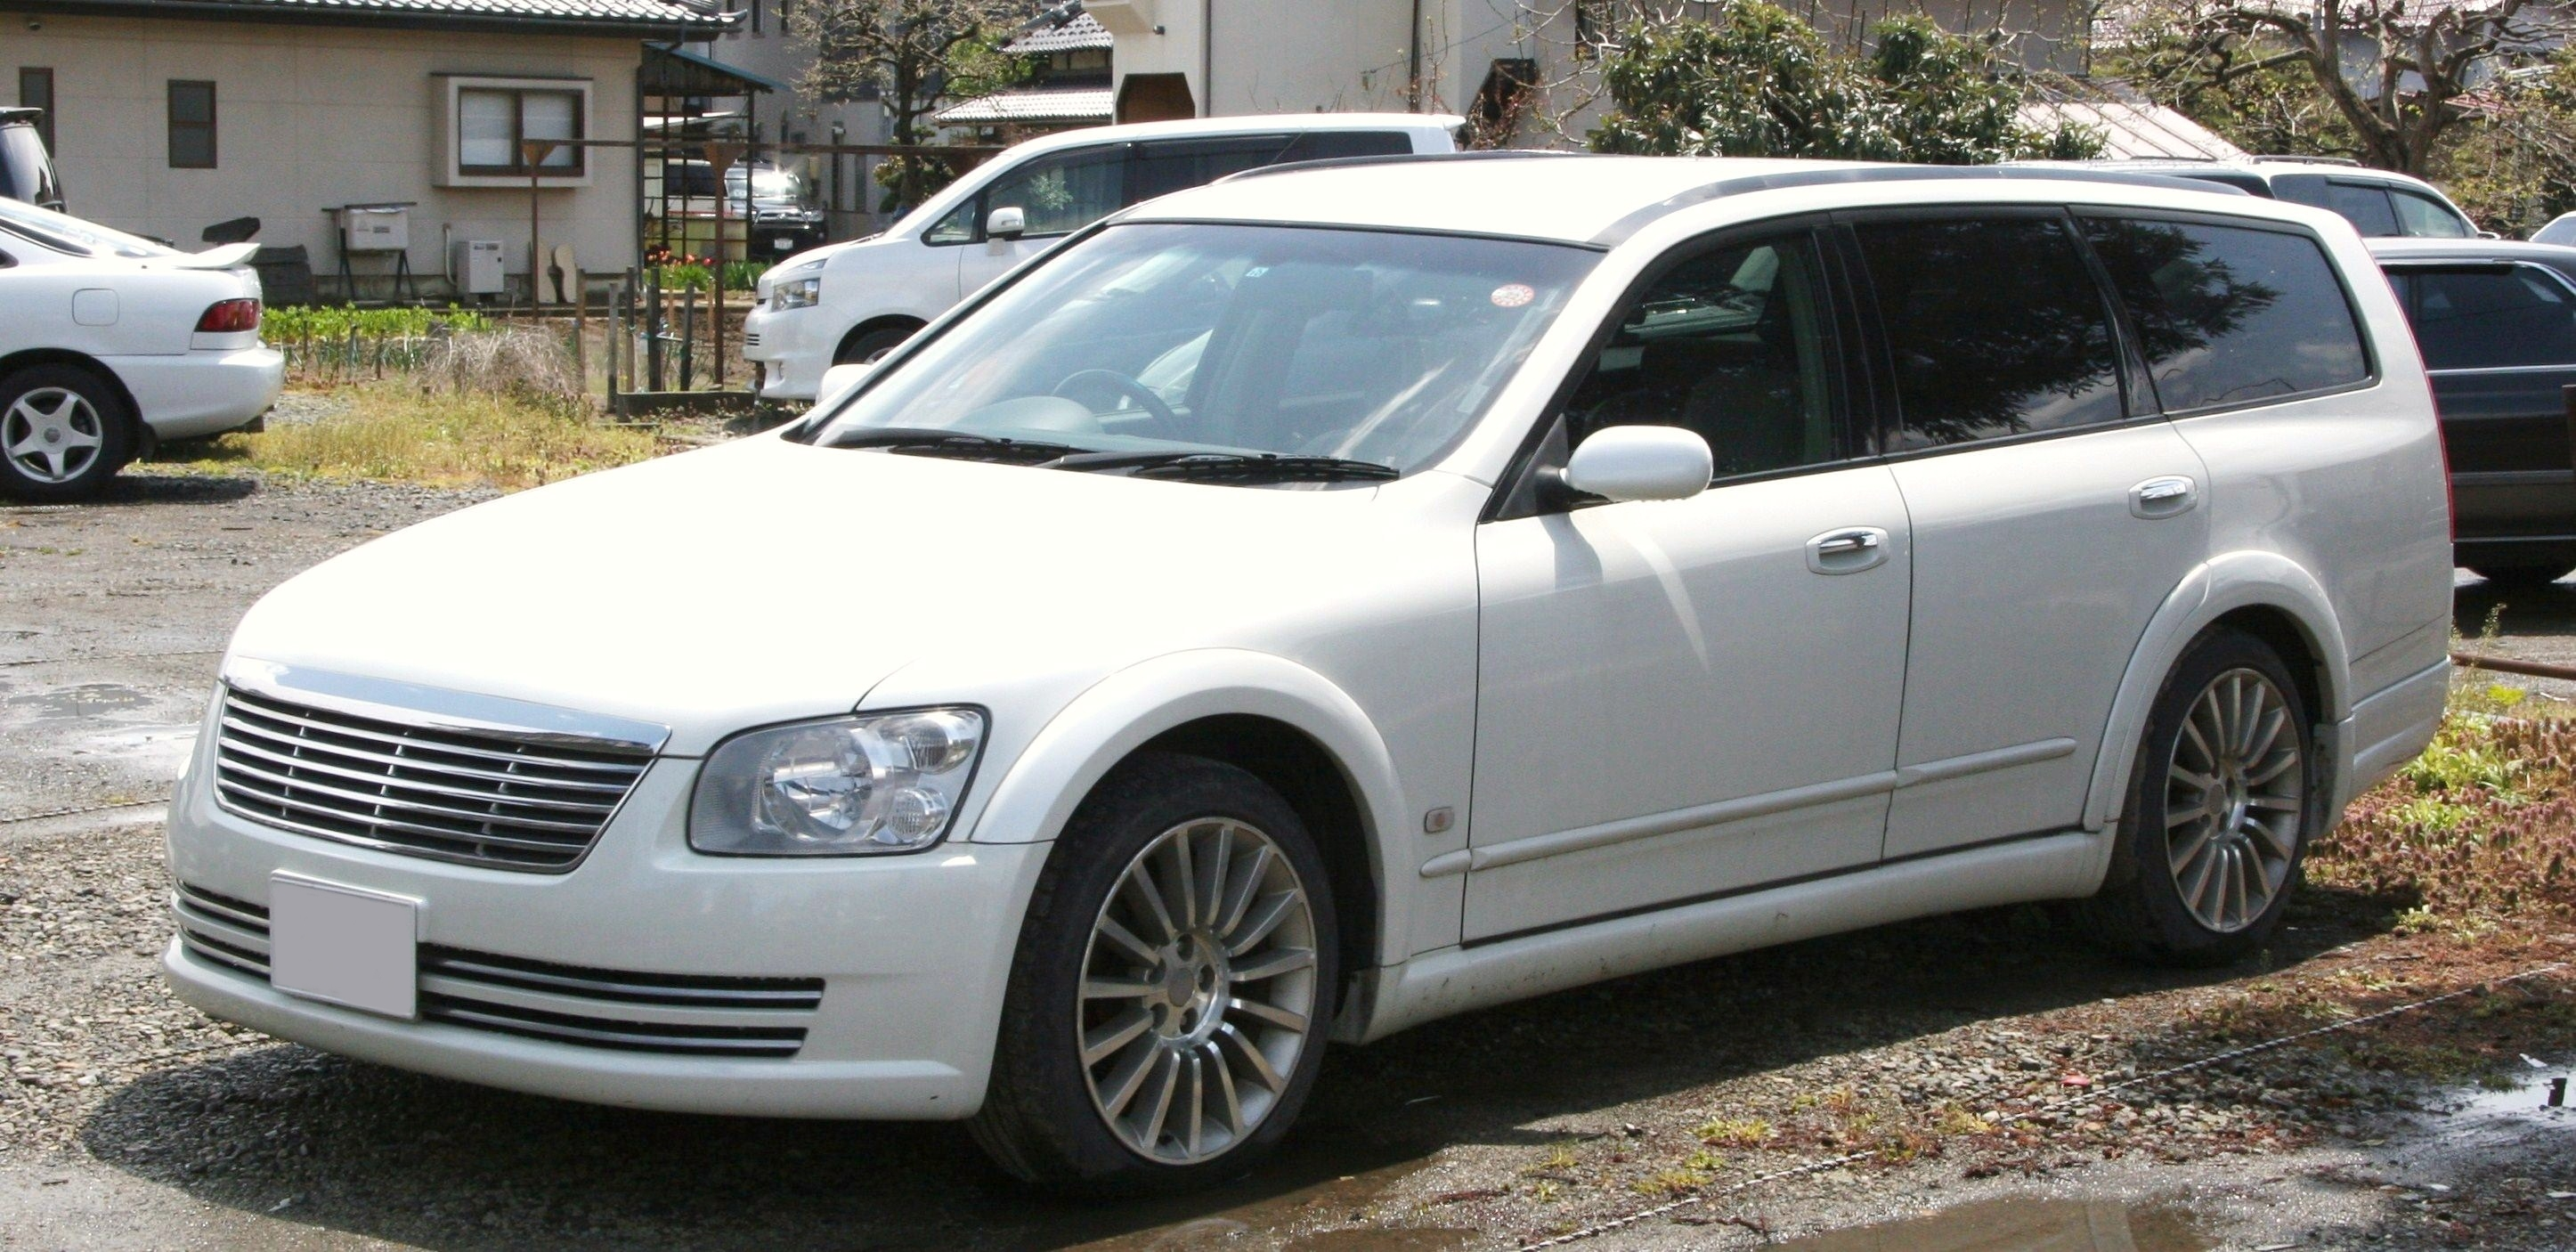 1000 Images About Nissan Stagea On Pinterest Nissan